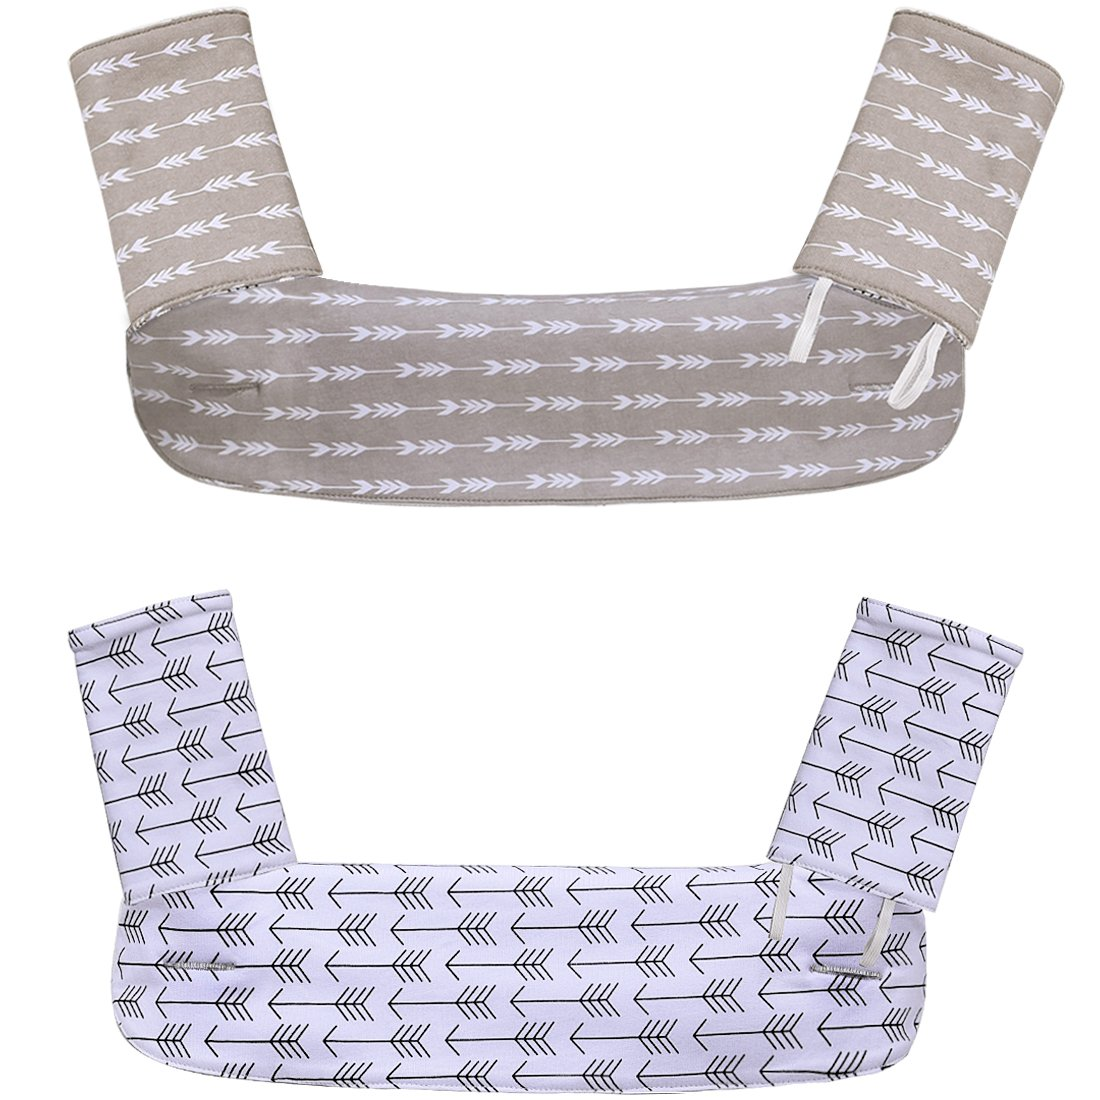 Kyapoo Baby Drool and Teething Pad Reversible Organic Cotton Bibs 3 Piece Gift Set for Ergobaby Four Position 360 Baby Carrier Black White Arrows